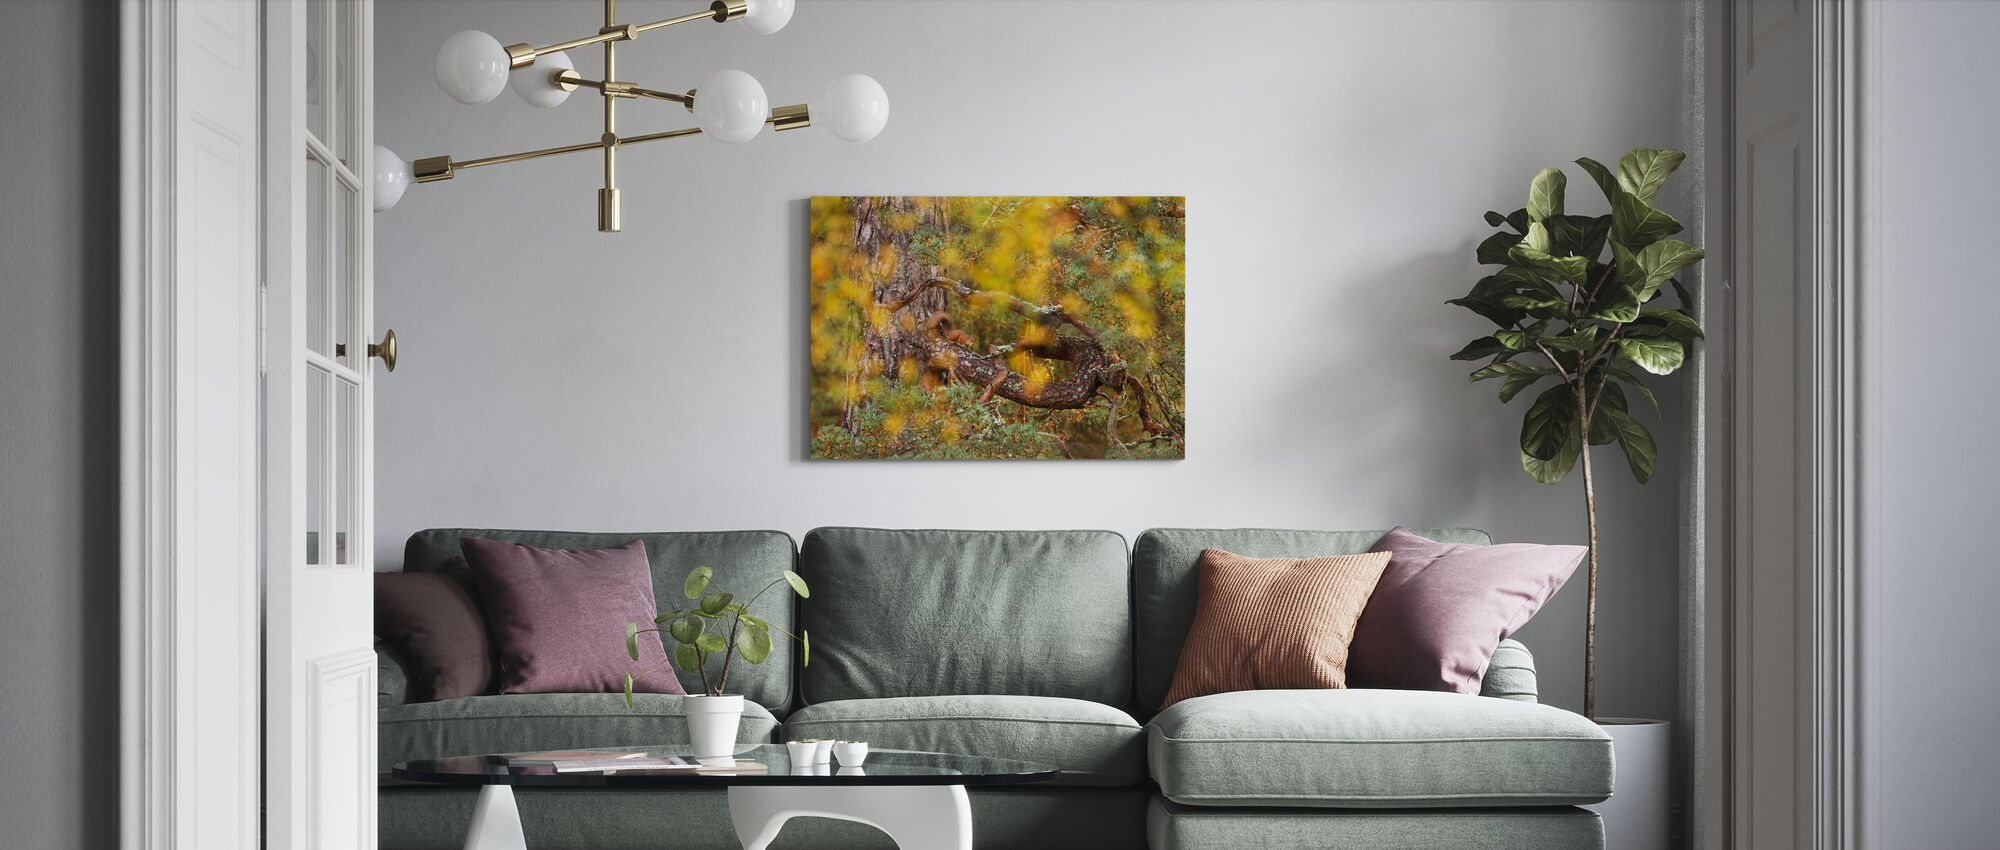 Red Squirrel on Old Pine Tree - Canvas print - Living Room